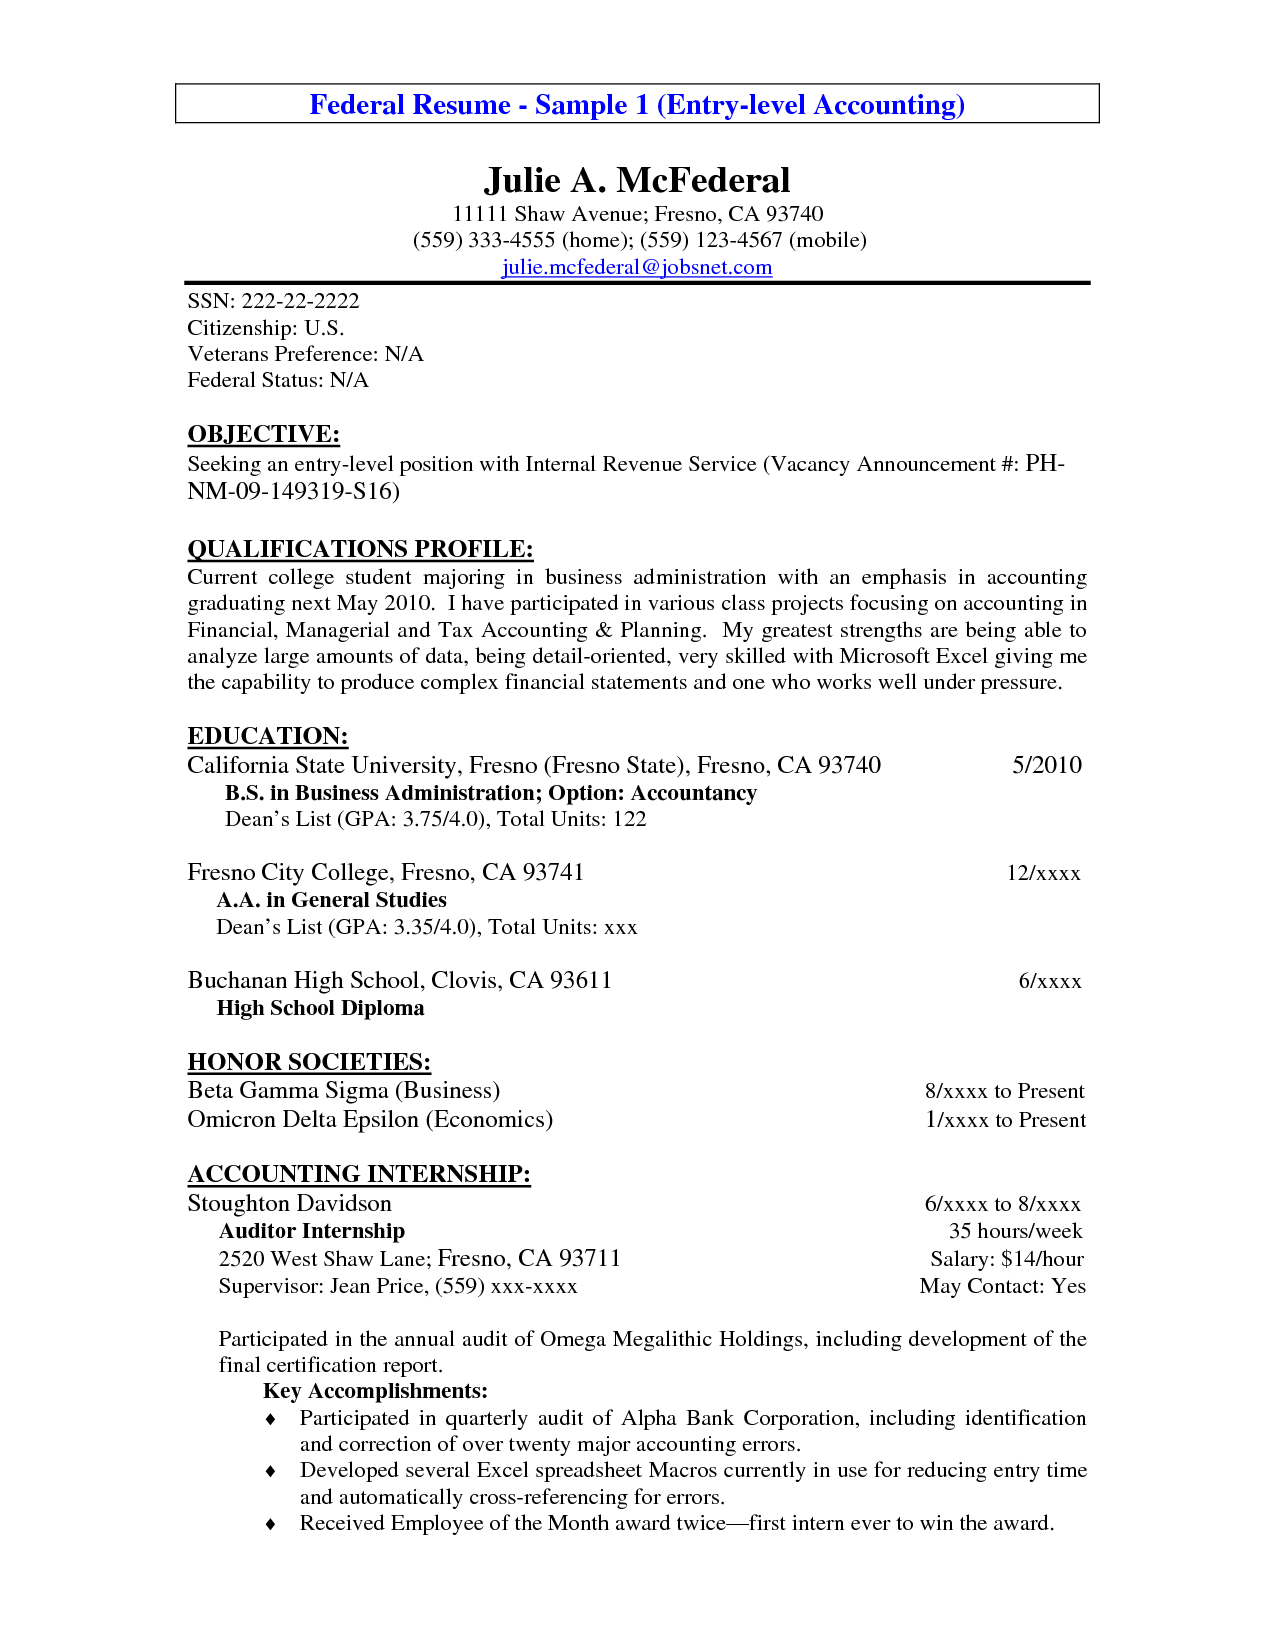 Accounting Internship Resume Objective Pleasing Ann Debusschere A_Debusschere On Pinterest